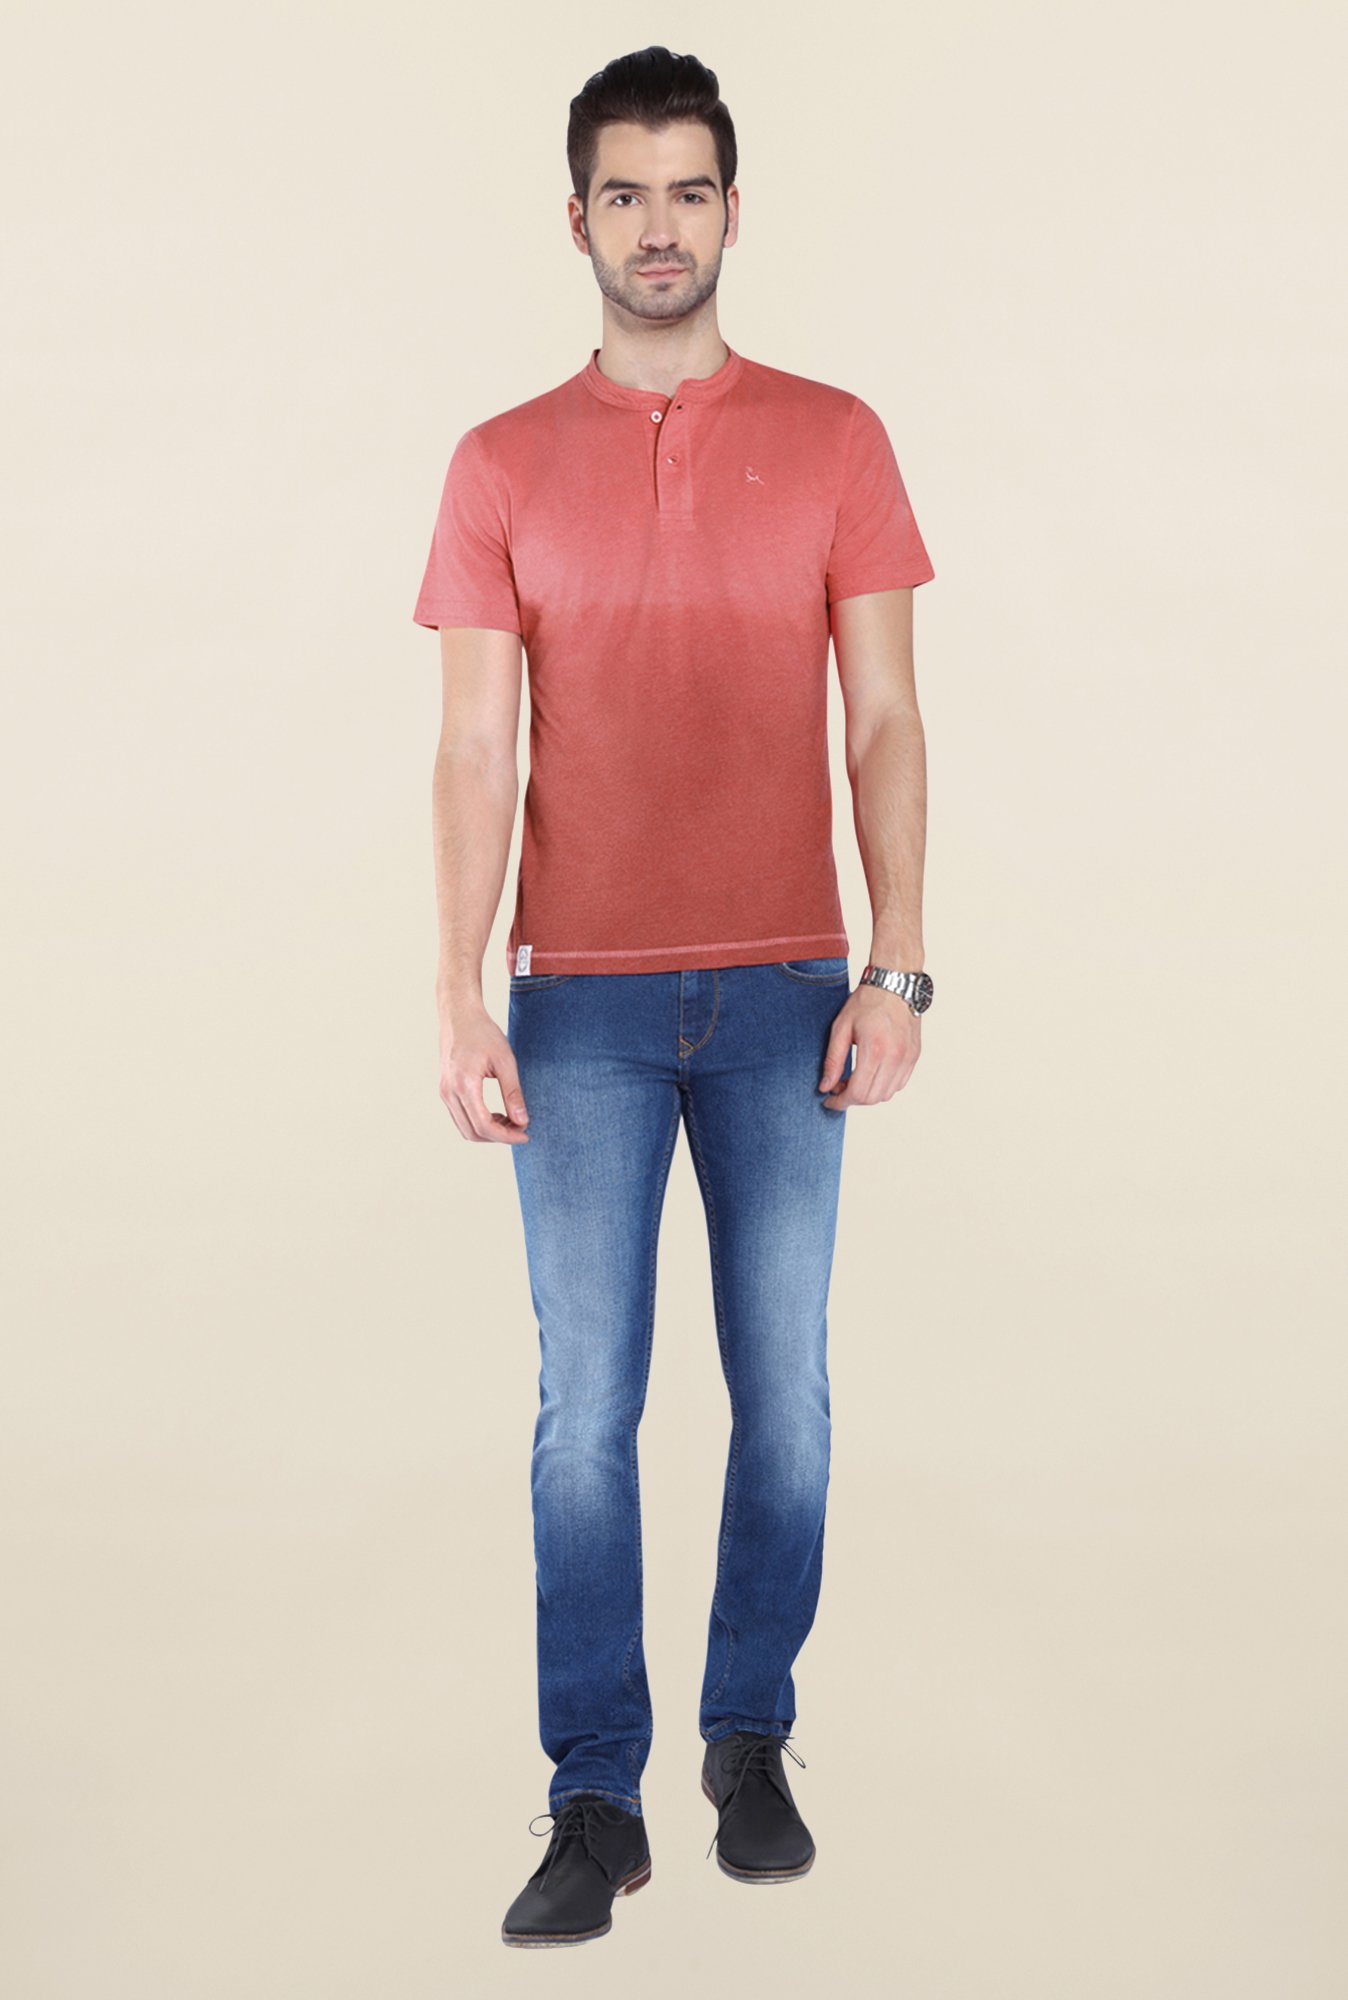 Parx Red Ombre Henley Neck T Shirt